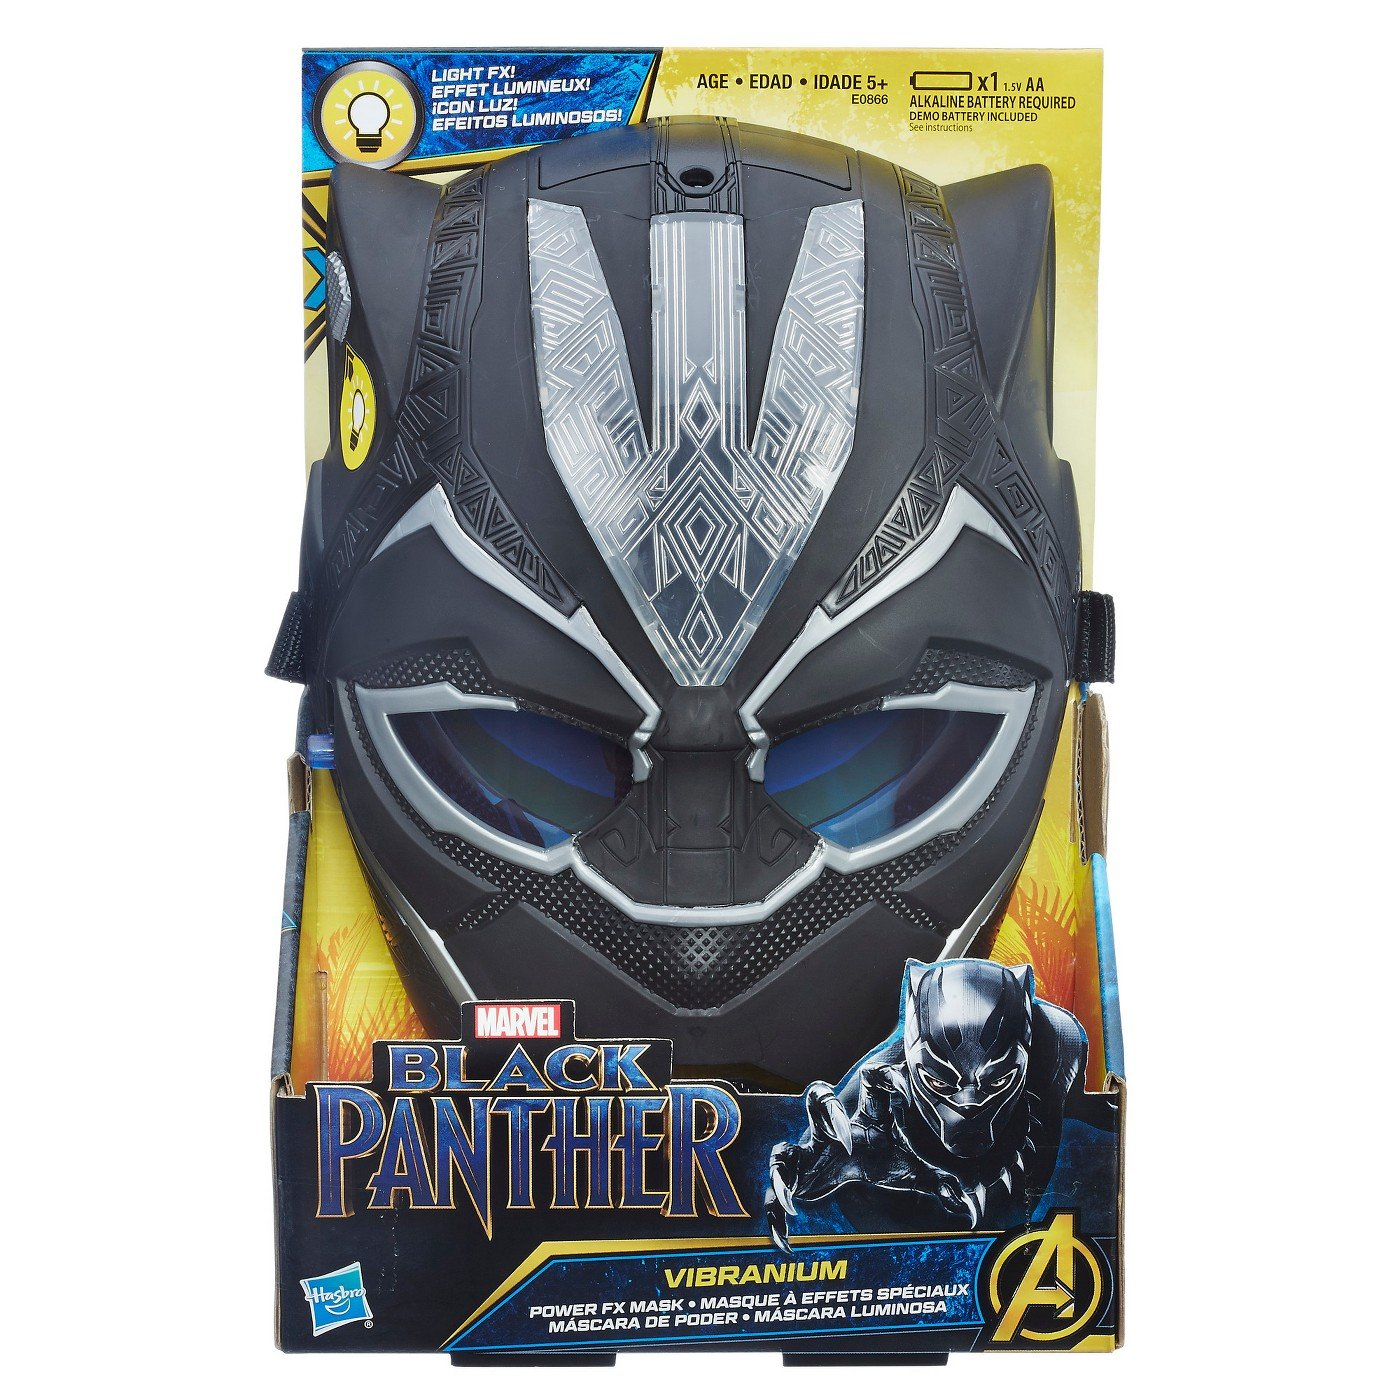 Amazon.com: Black Panther Vibranium Power FX Mask And Power FX Claw: Toys & Games